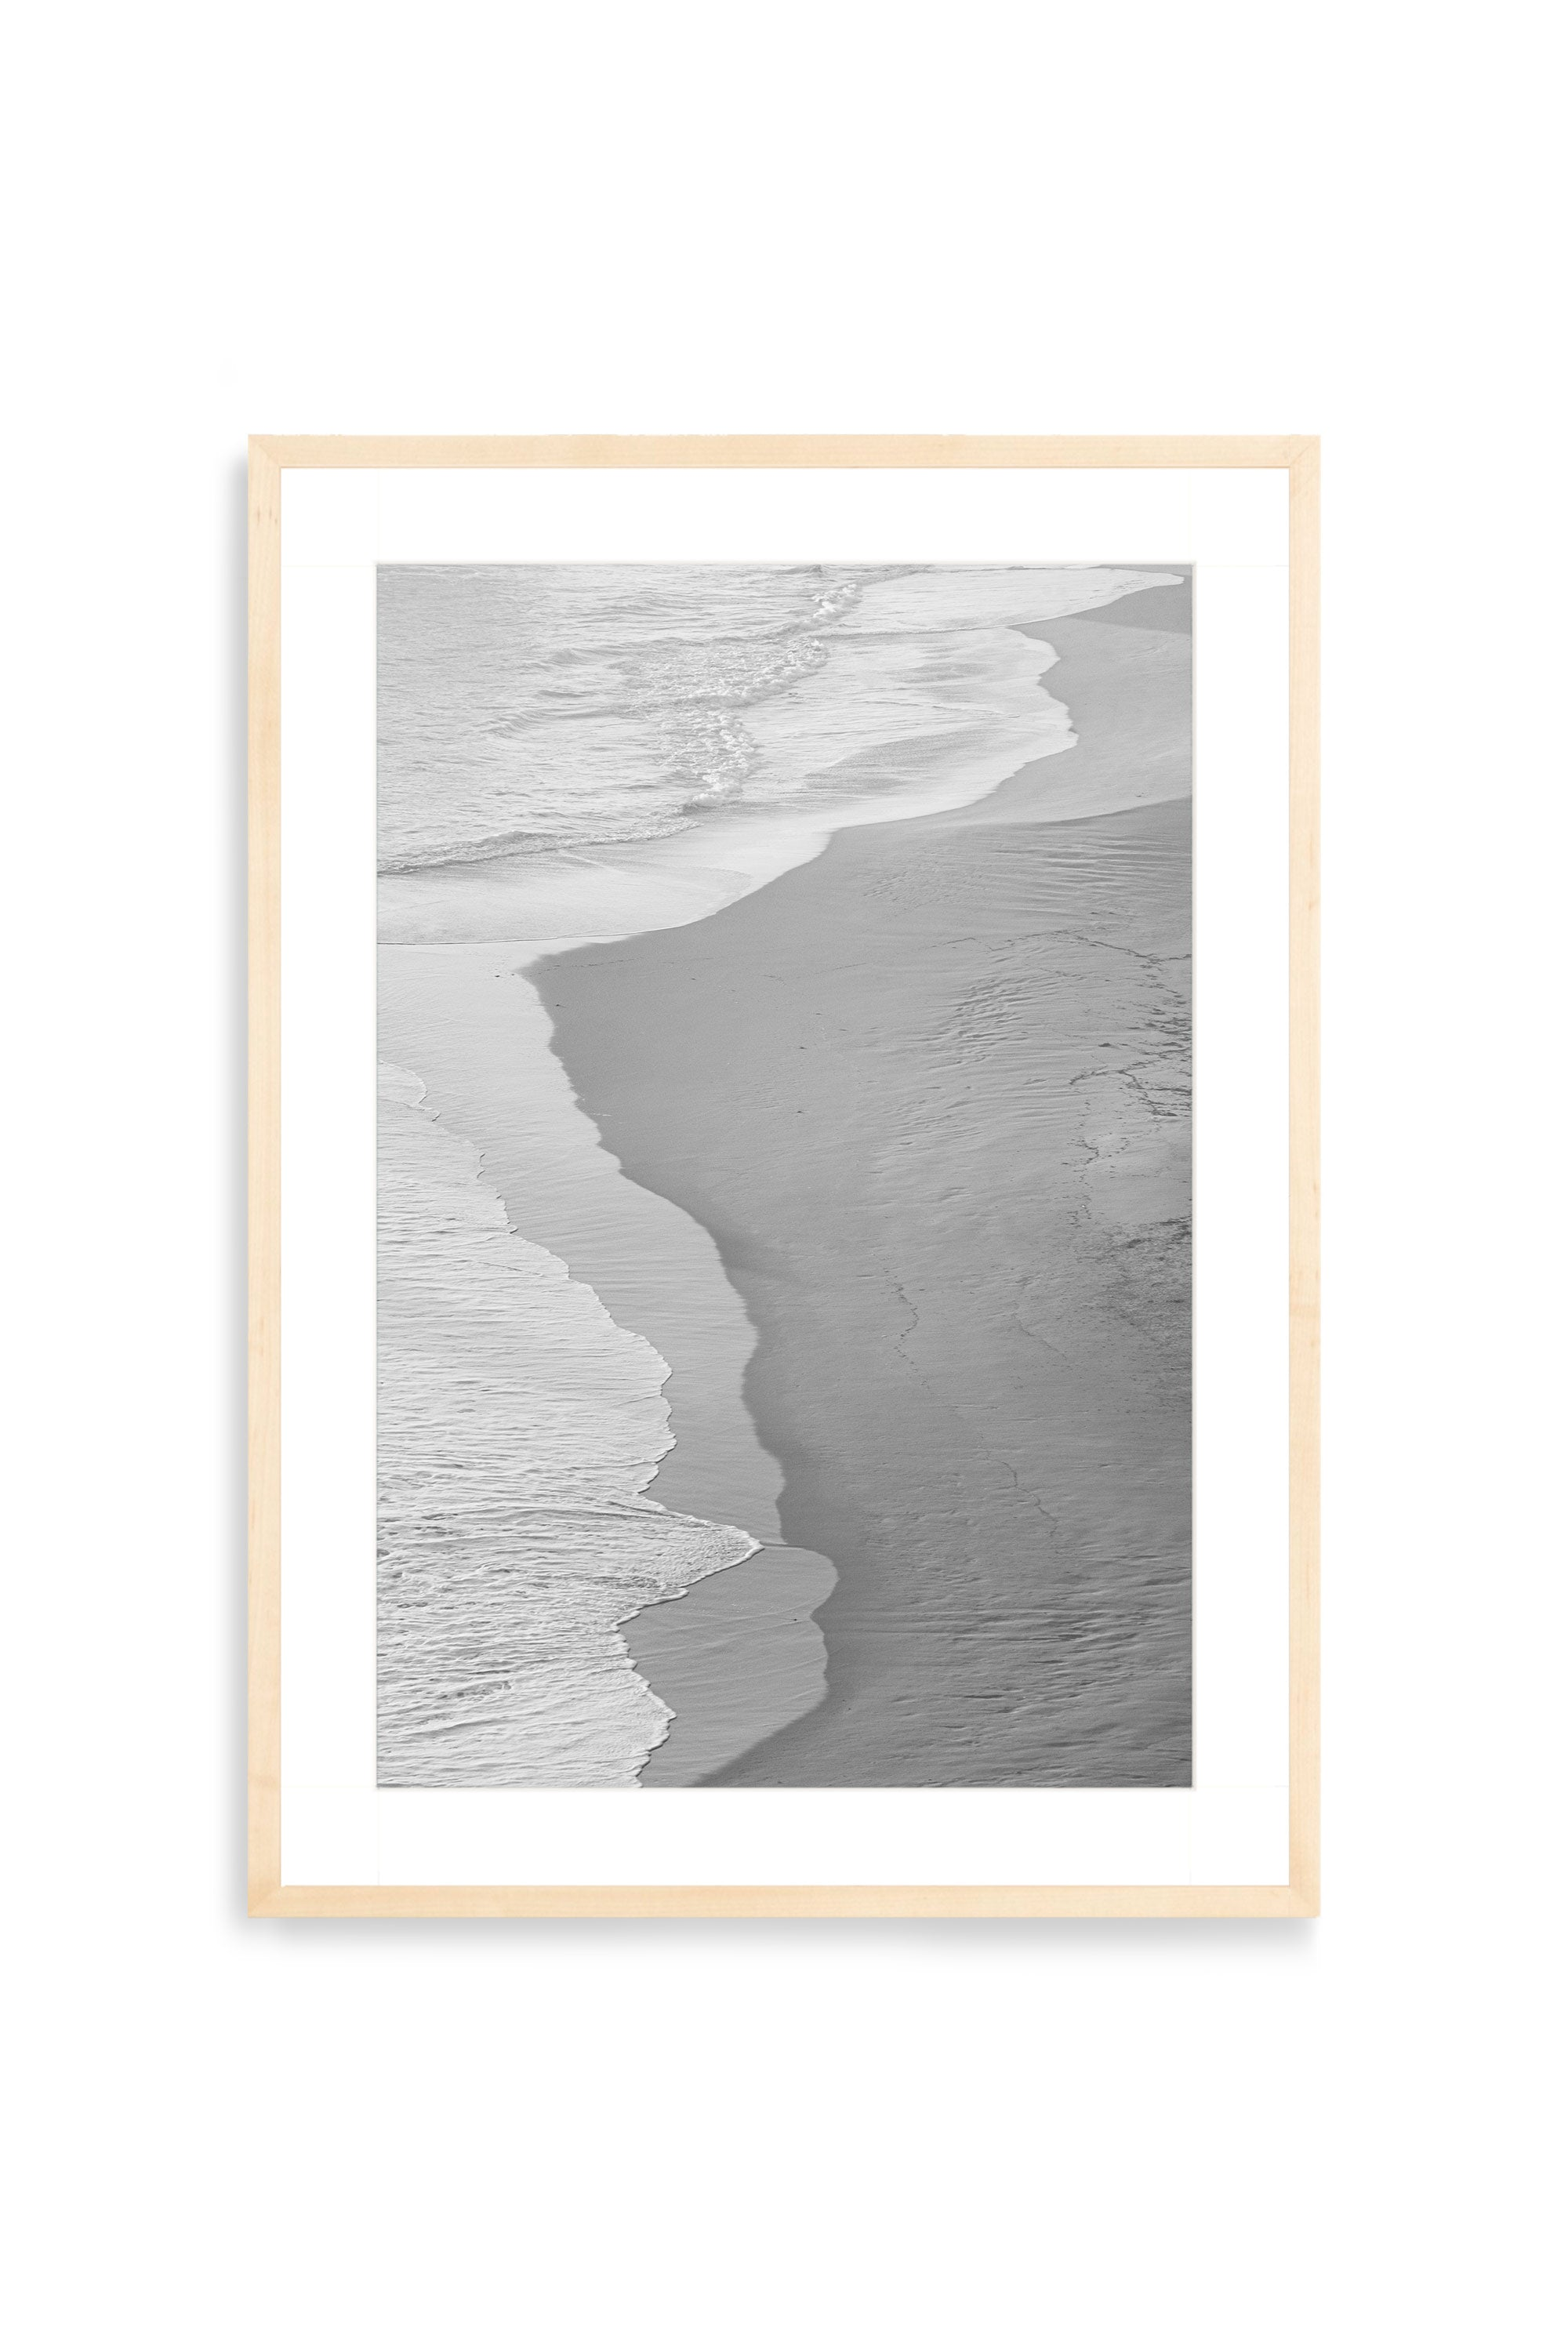 'Algarve' Photography Print By Carley Rudd in  - 1 - Onia